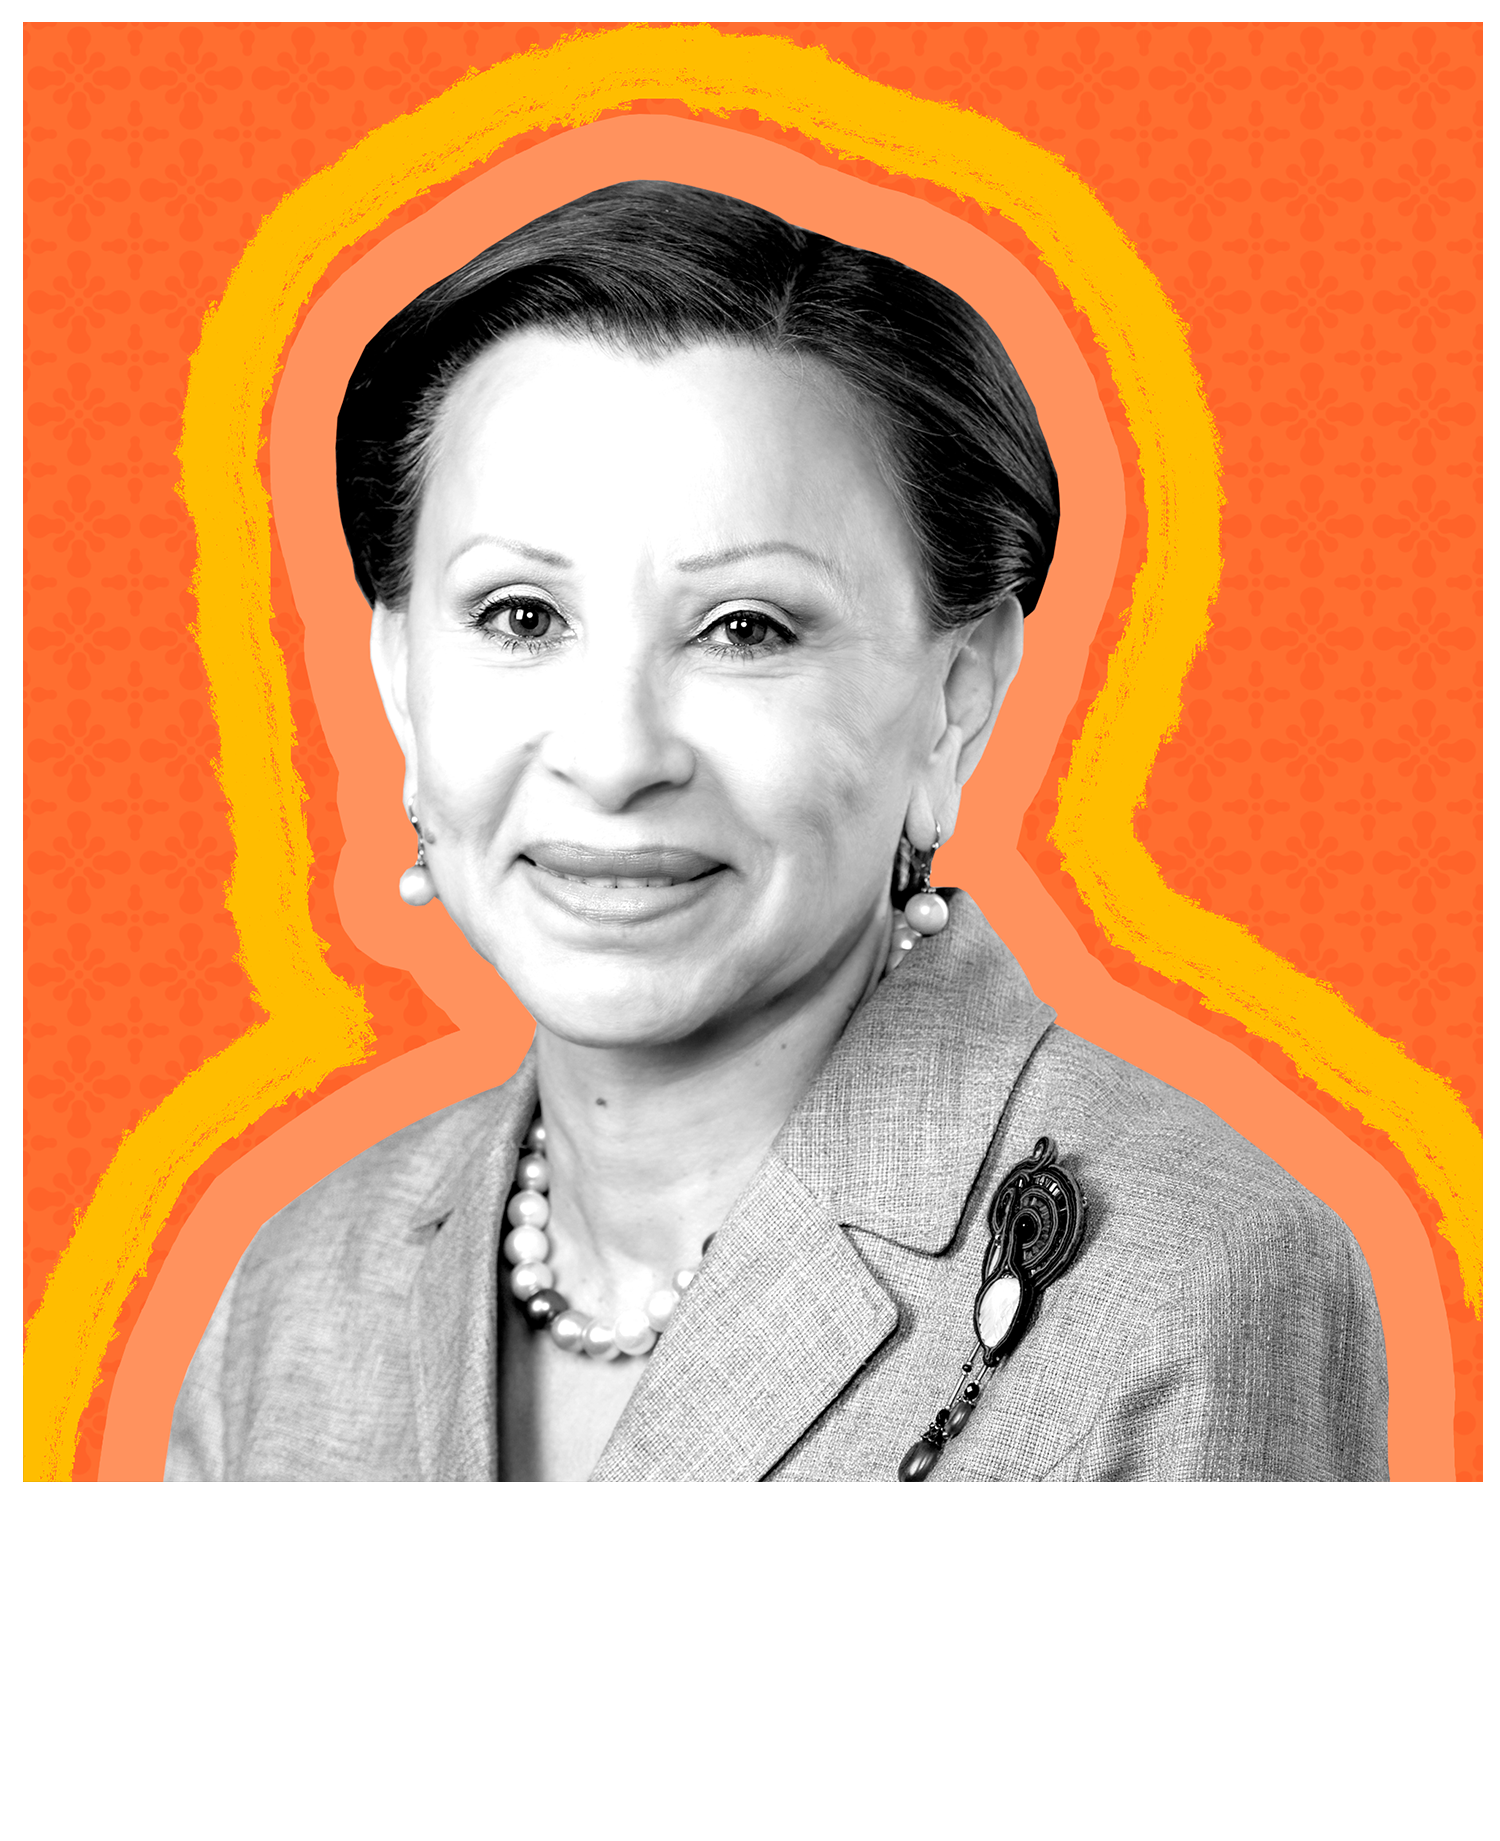 08262019---UWDA-Endorsement-Graphic-NydiaVelazquez-Slide-v2